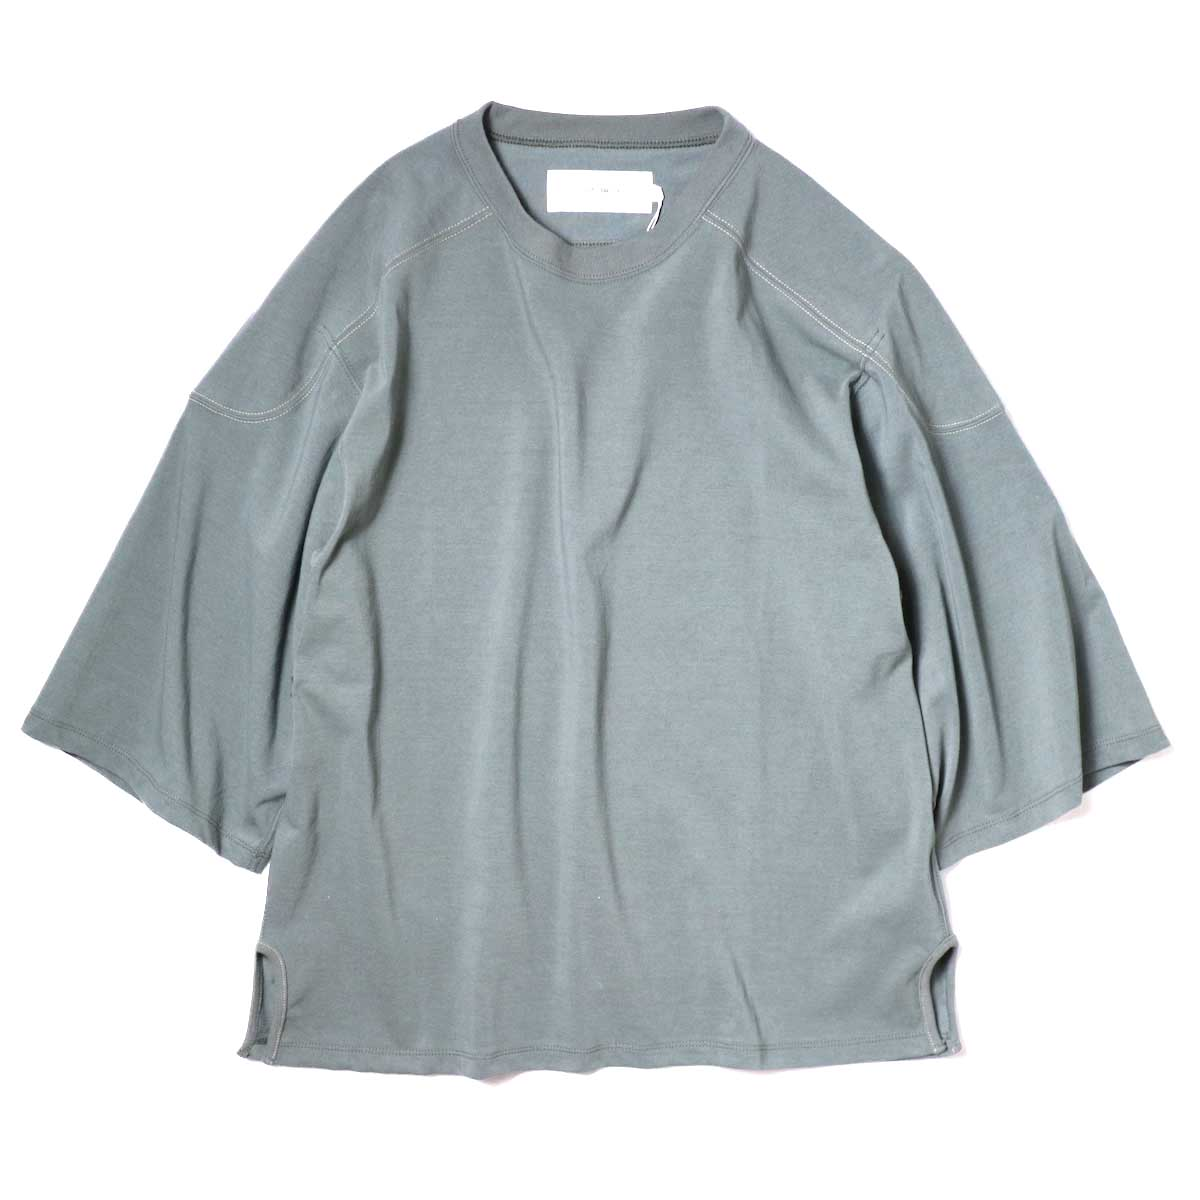 JANE SMITH / CLASSIC FOOTBALL T-SHIRT (Sage Green) 正面